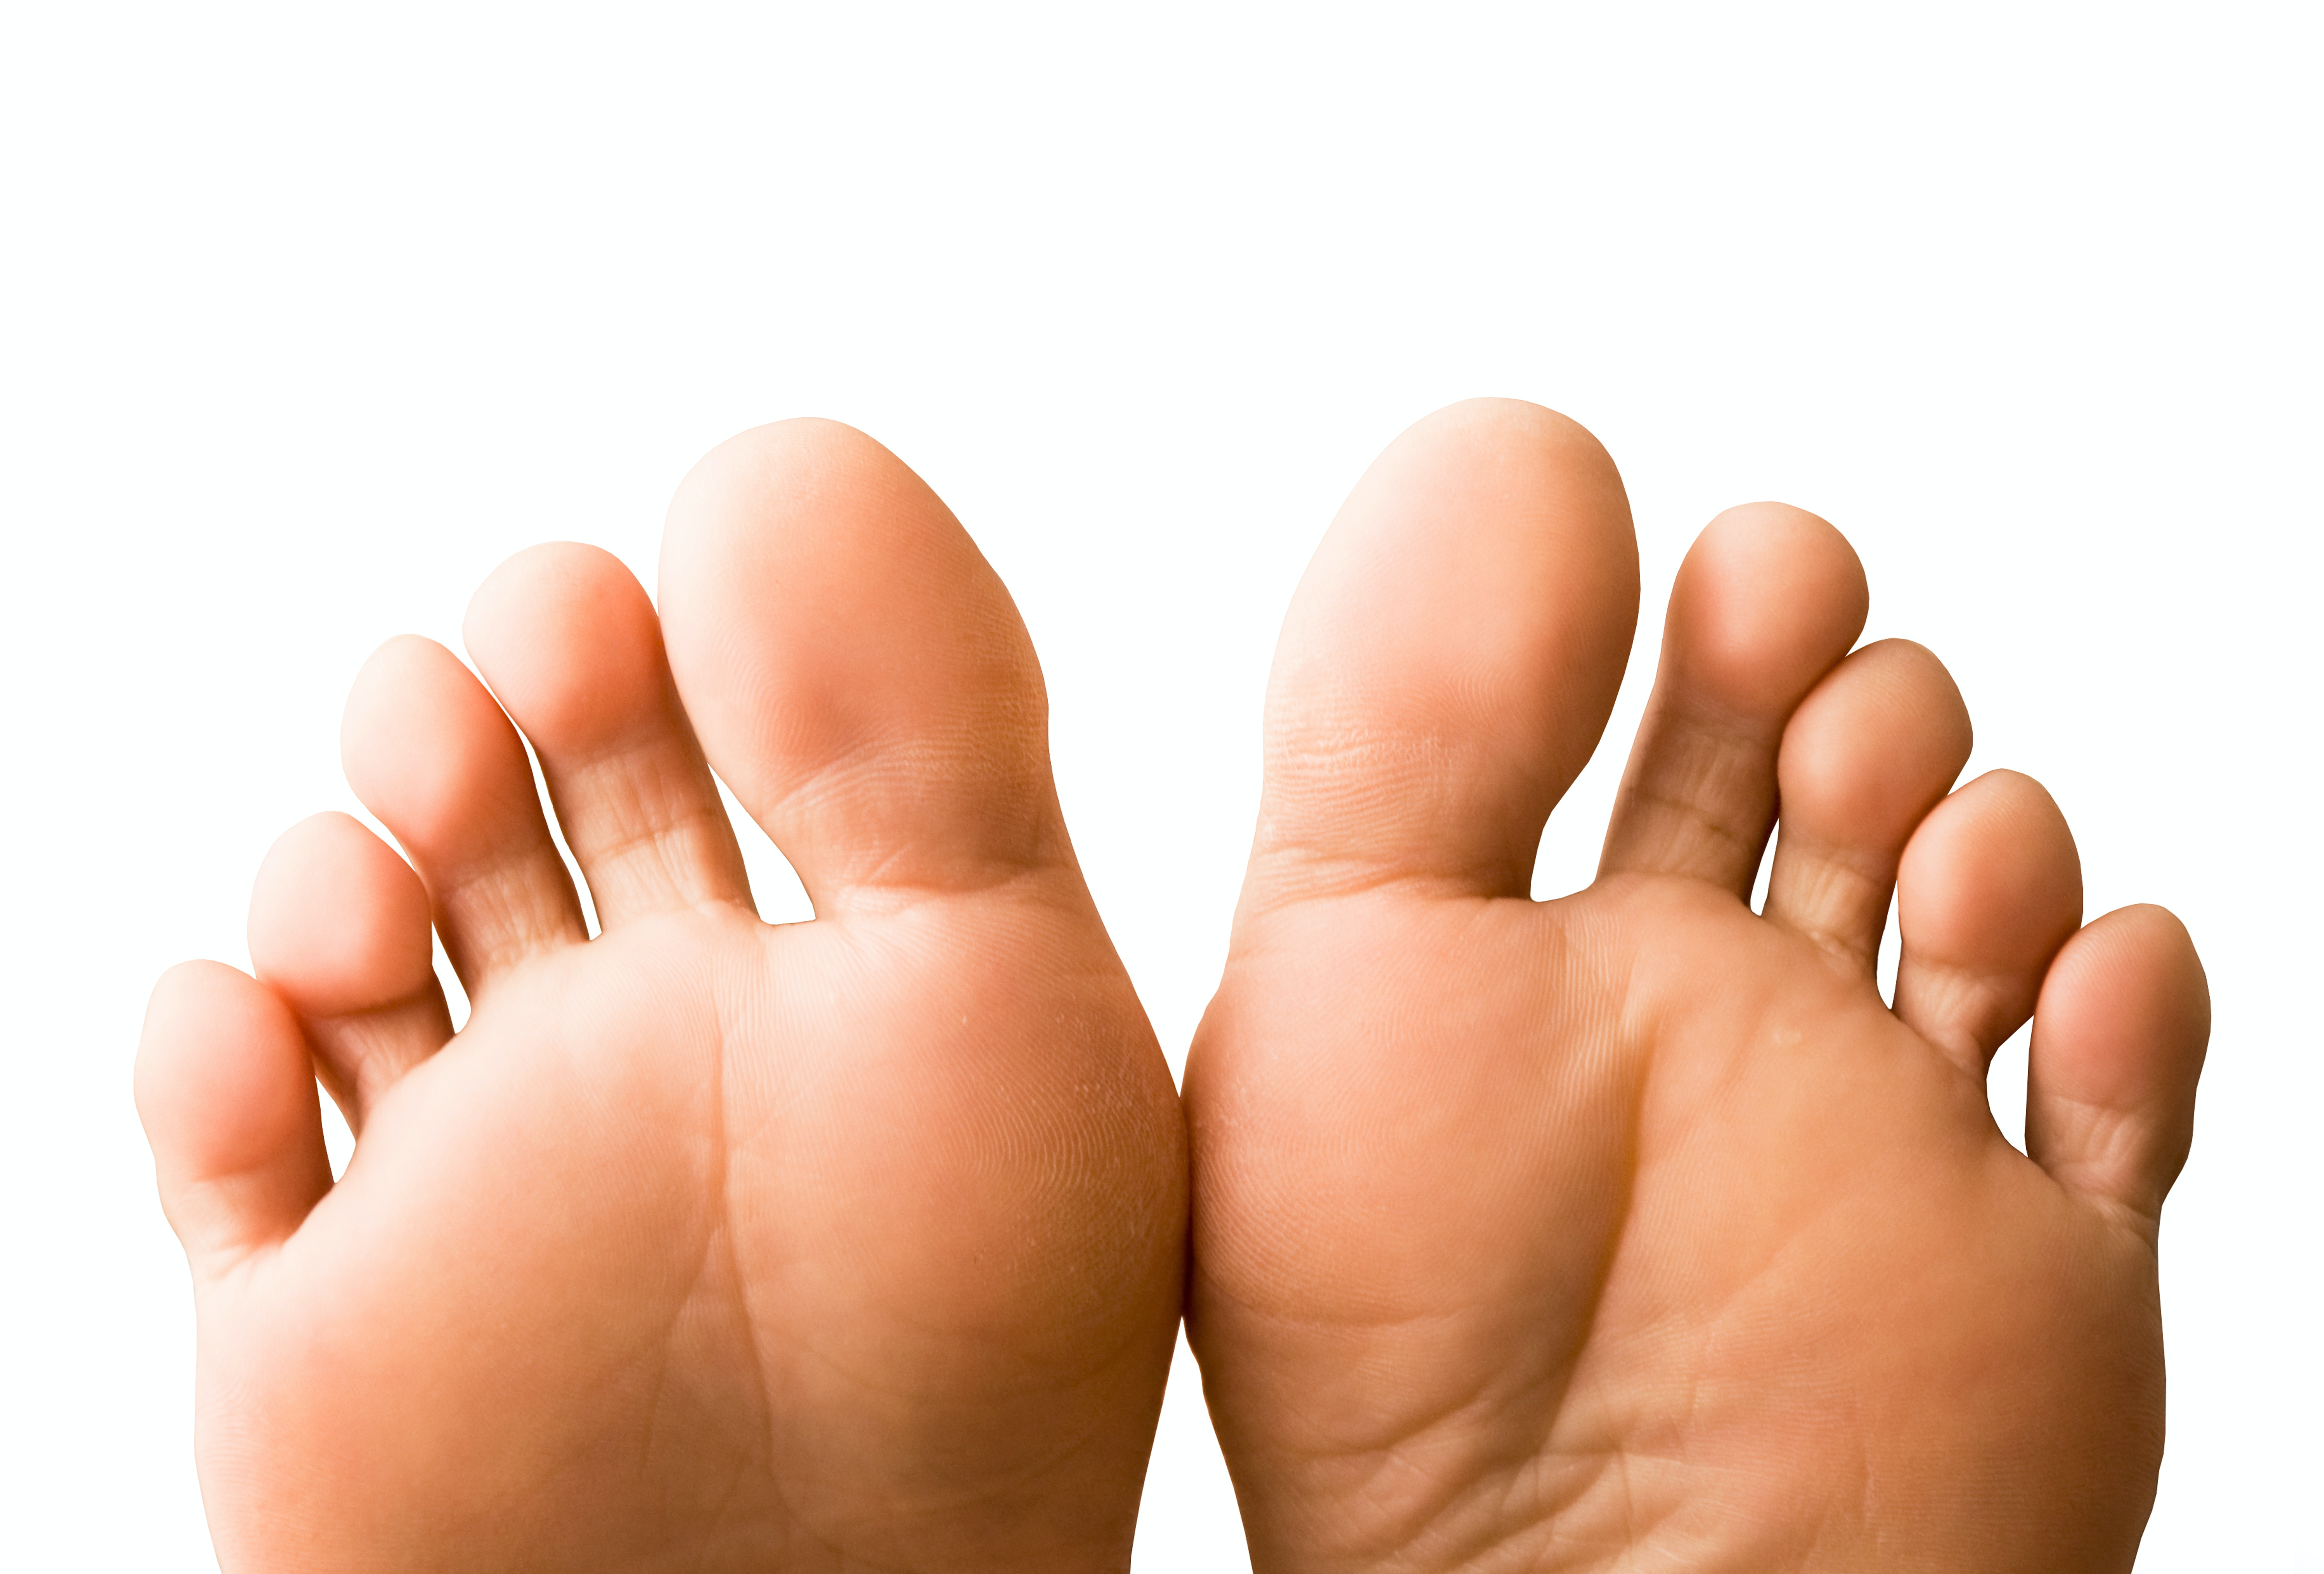 An image depicting a person suffering from swollen toes symptoms